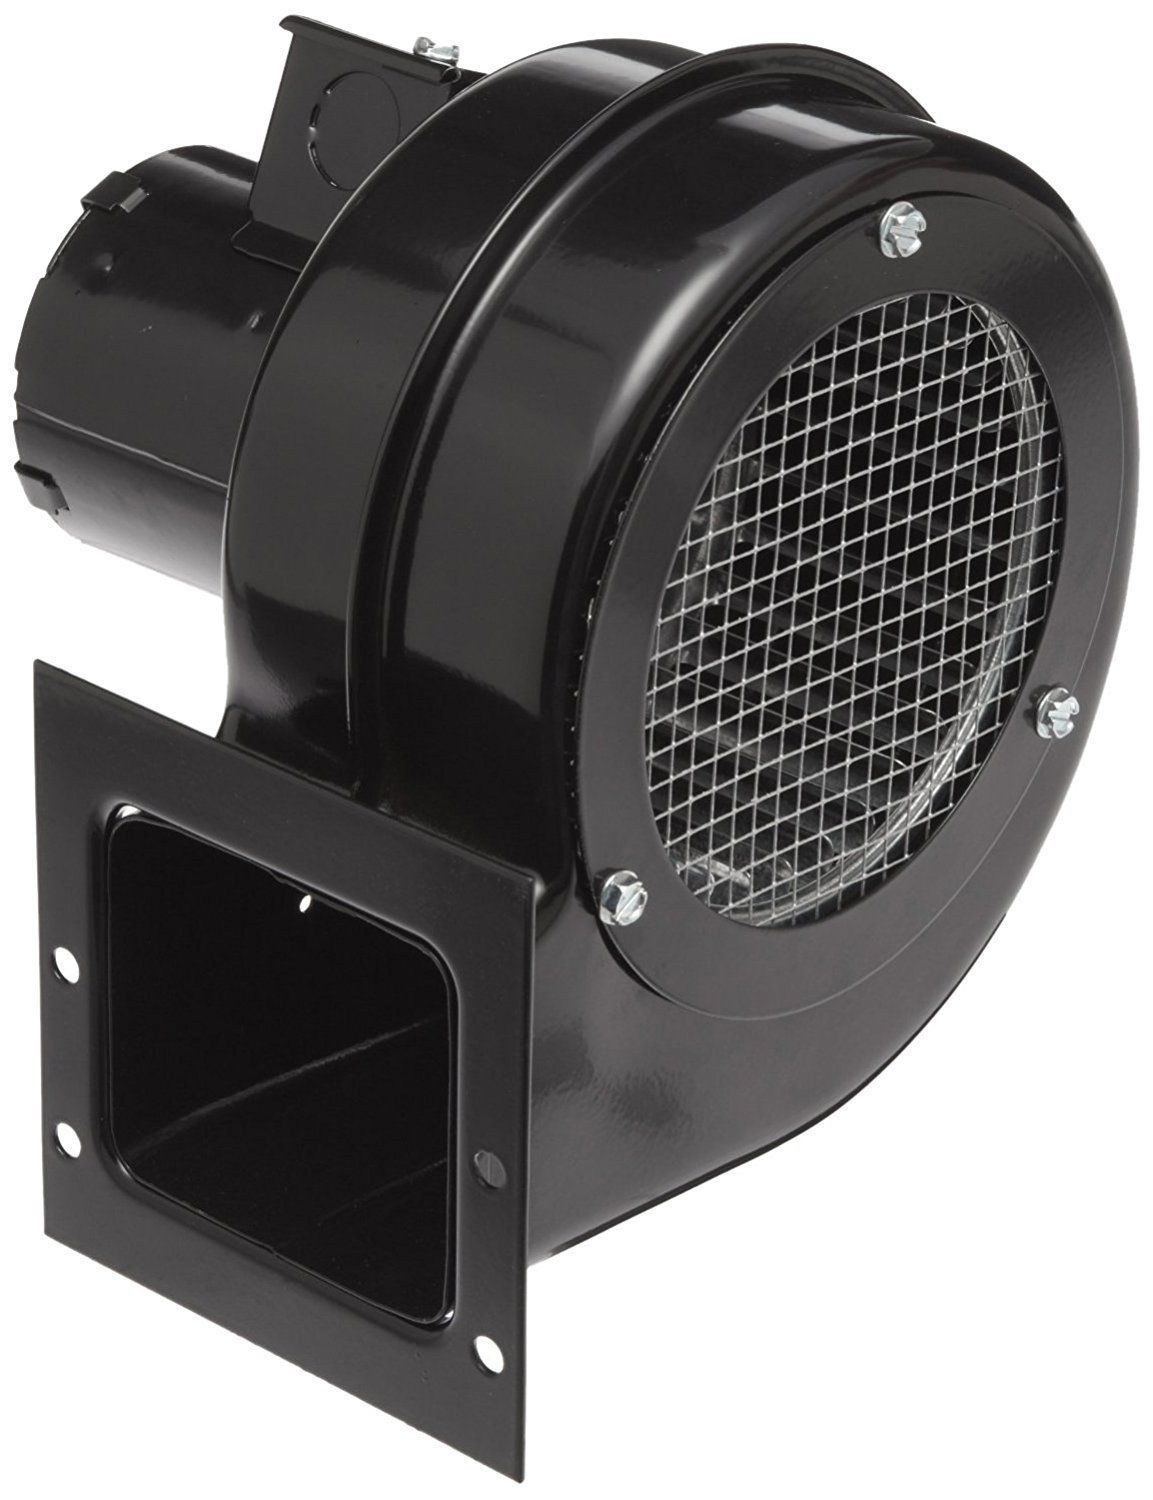 Fasco 70731455 and 70631543 PSC Blower, 160 CFM, 1500 RPM ...